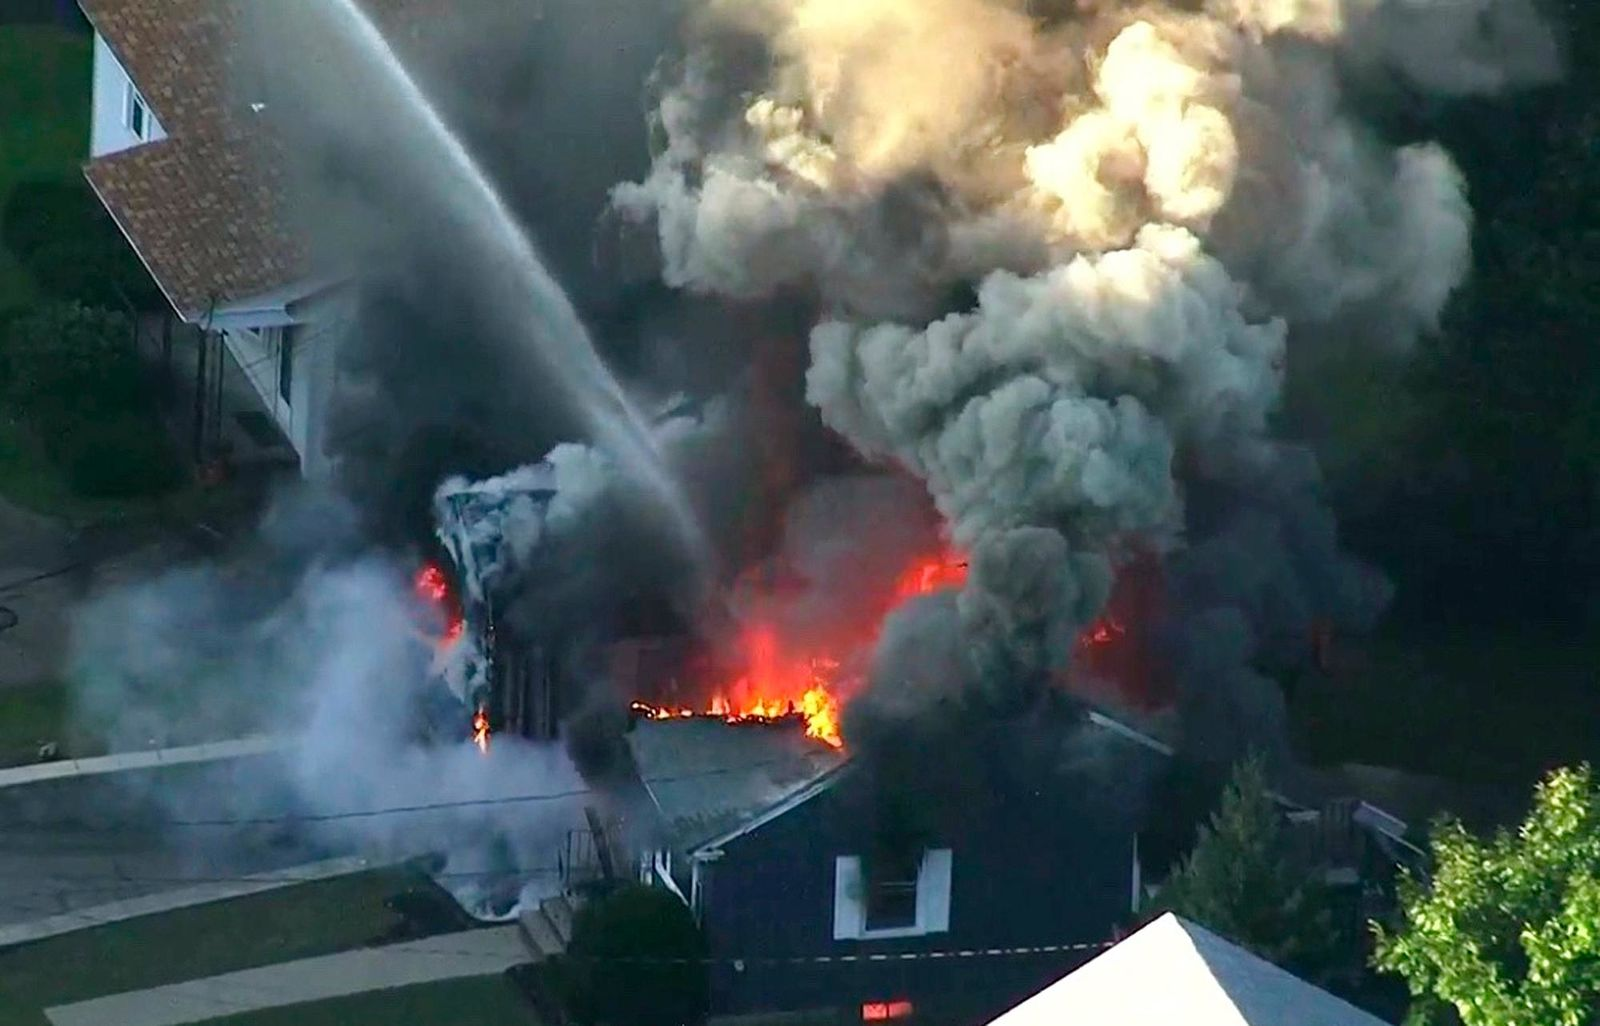 FILE - In this Sept. 13, 2018 file image from video provided by WCVB in Boston, flames consume the roof of a home following an explosion in Lawrence, Mass.{ } (WCVB via AP, File)